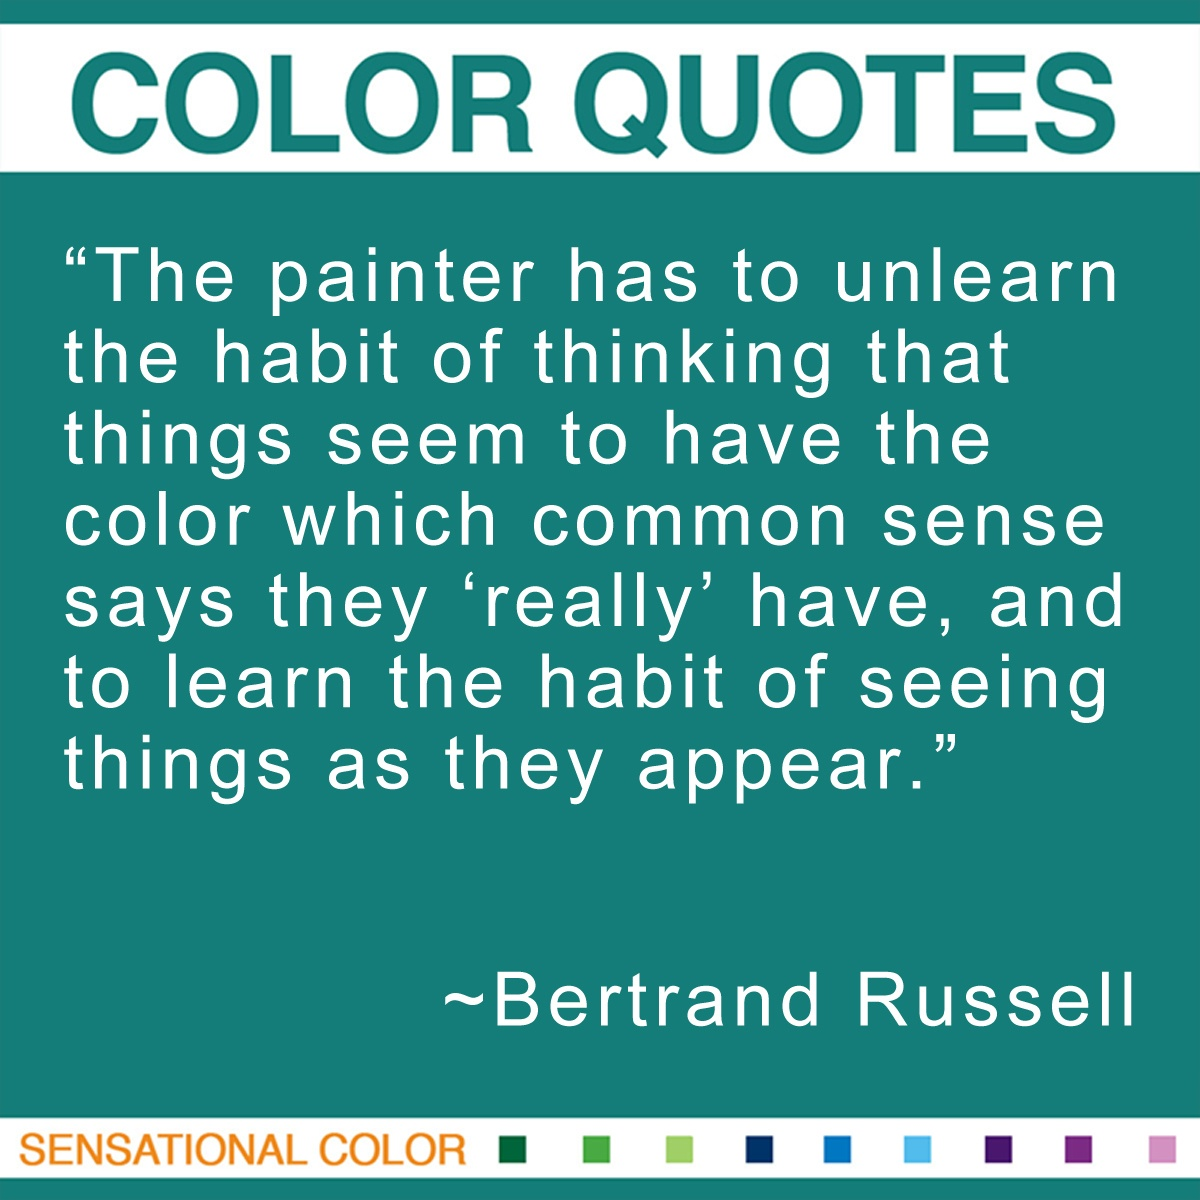 """The painter has to unlearn the habit of thinking that things seem to have the color which common sense says they 'really' have, and to learn the habit of seeing things as they appear."" - Bertrand Russell"